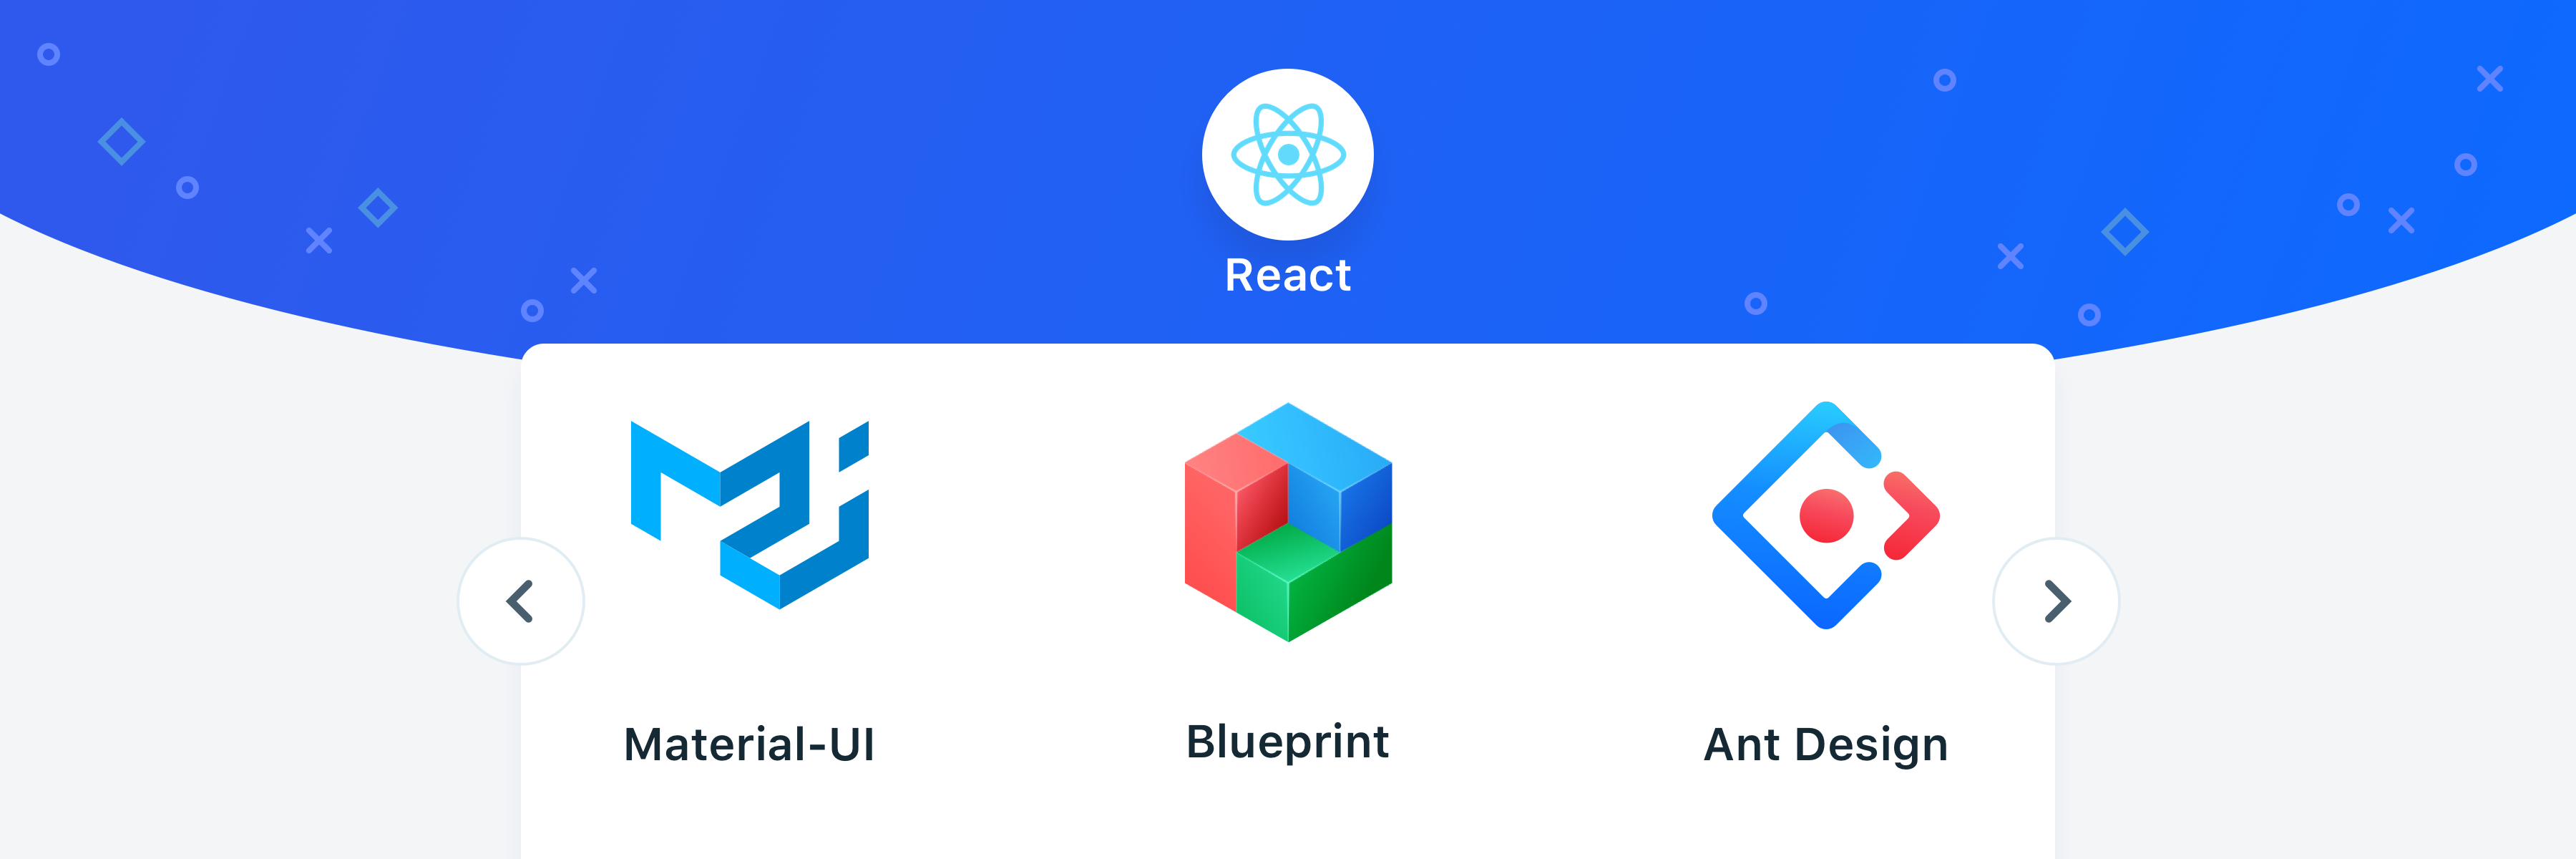 Learn from React-based design systems - UX Collective